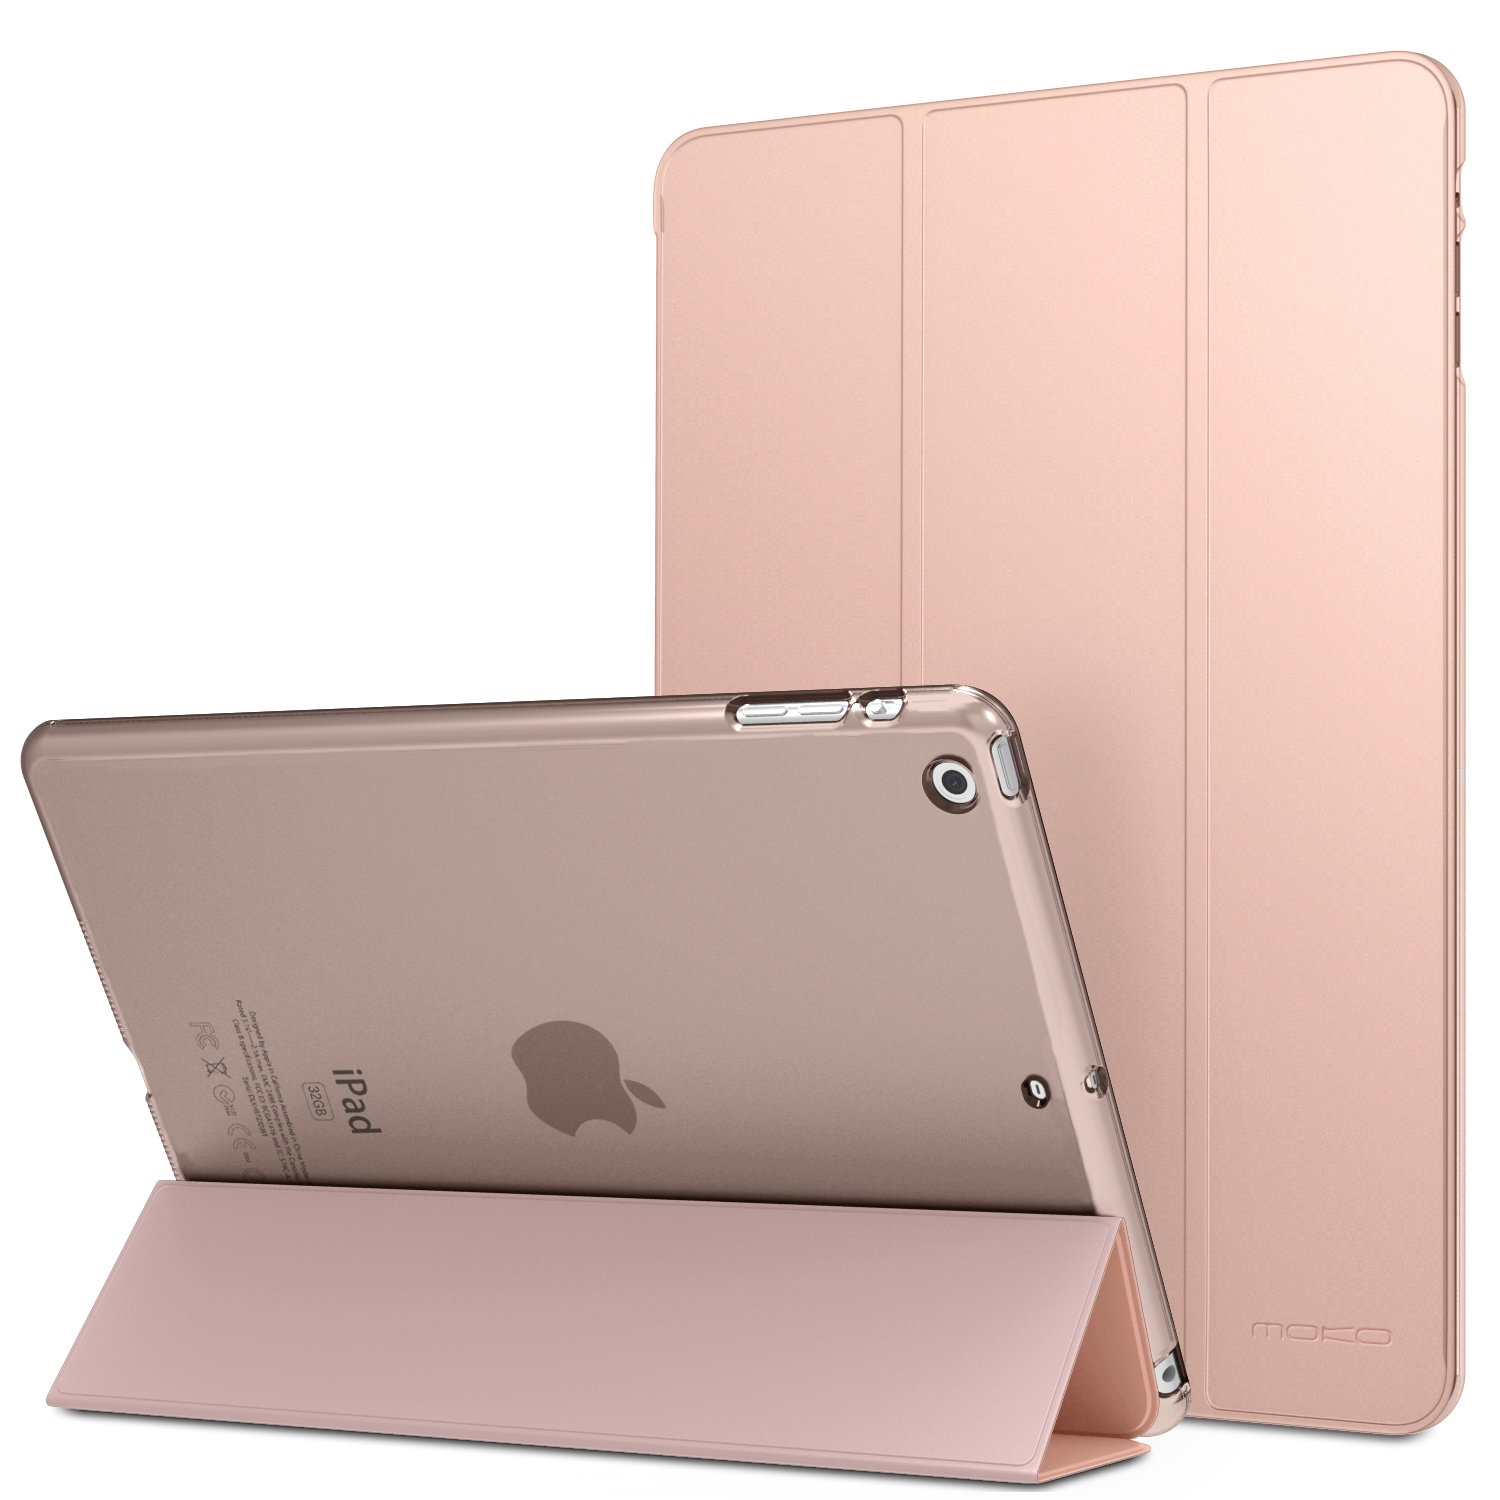 apple ipad air cover stand case moko rose gold hard back protector tablet new ebay. Black Bedroom Furniture Sets. Home Design Ideas